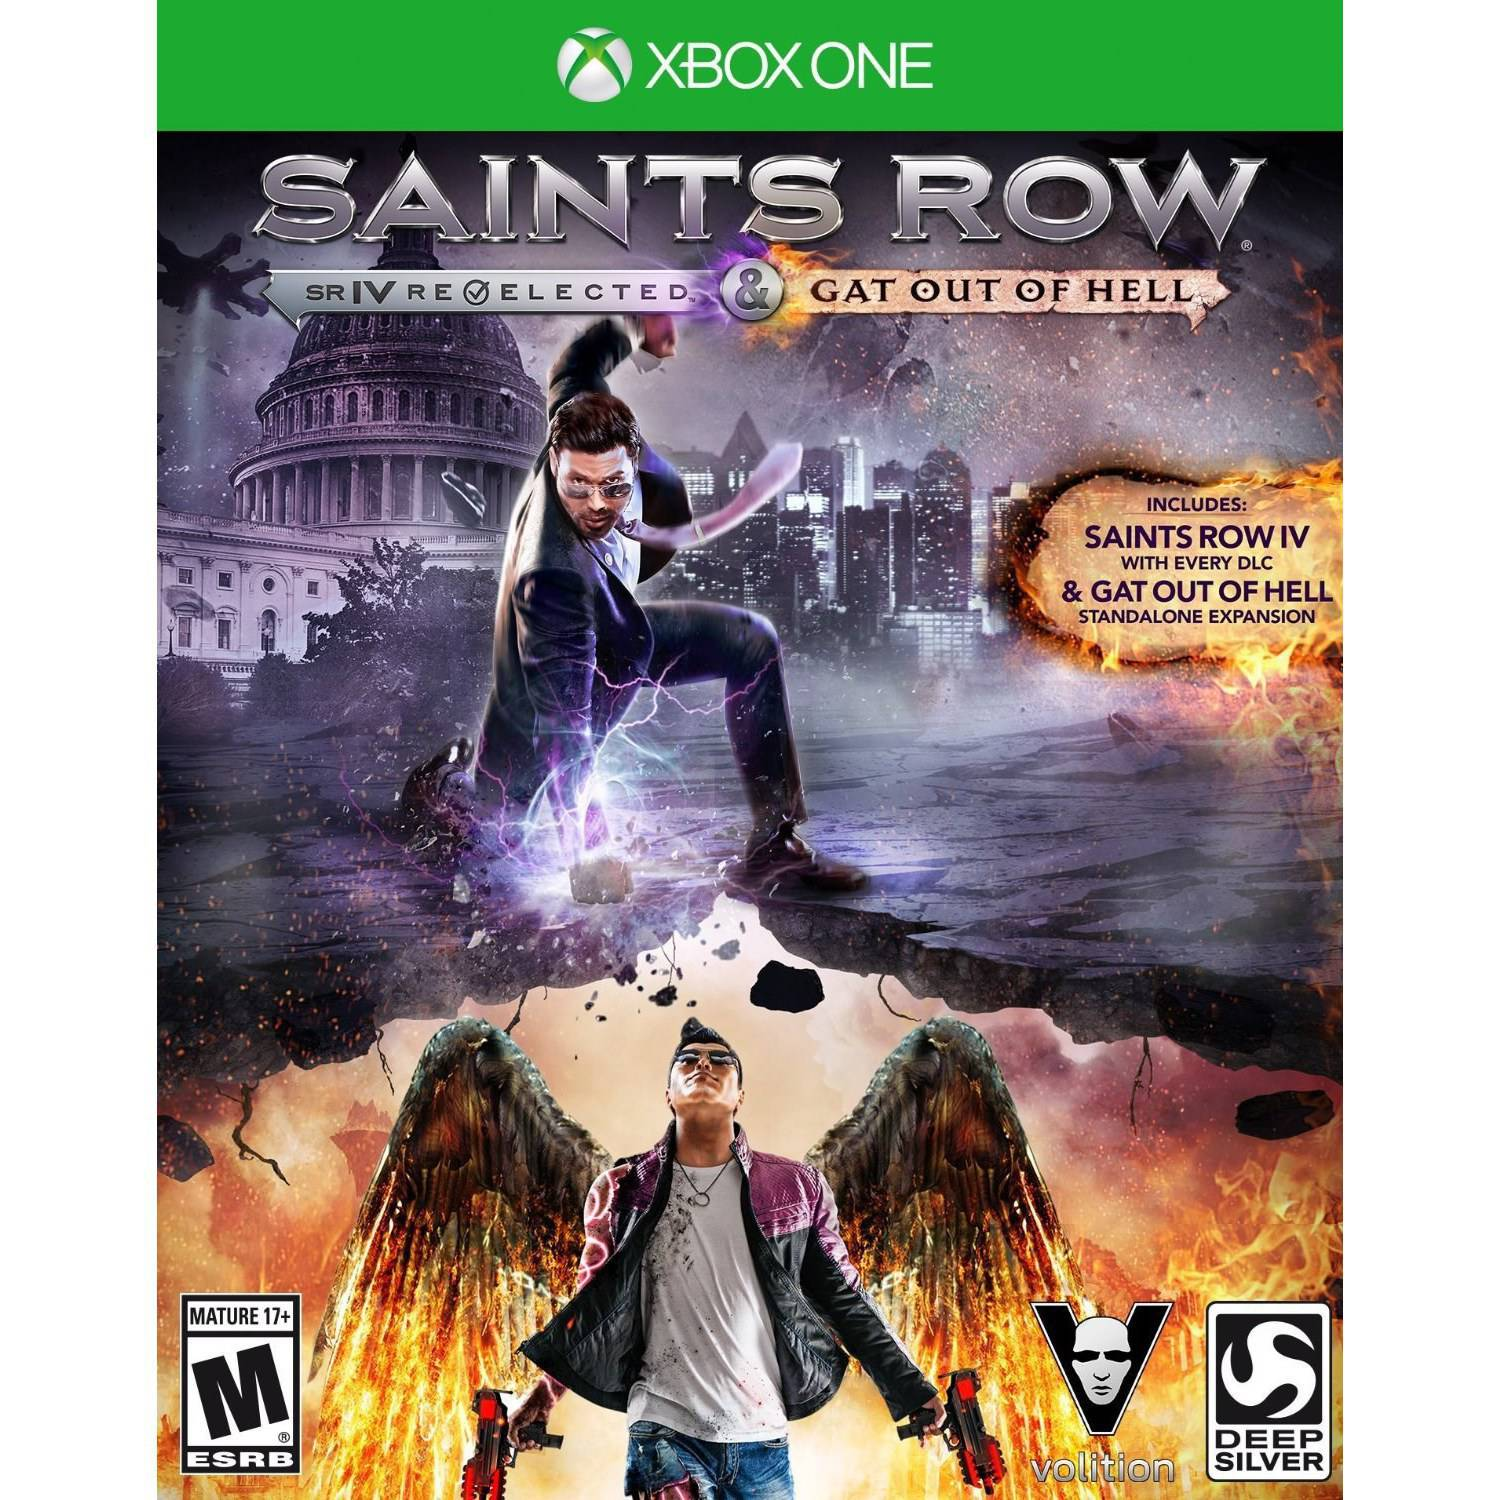 Saints Row IV: Re-Elected (Xbox One) - Pre-Owned